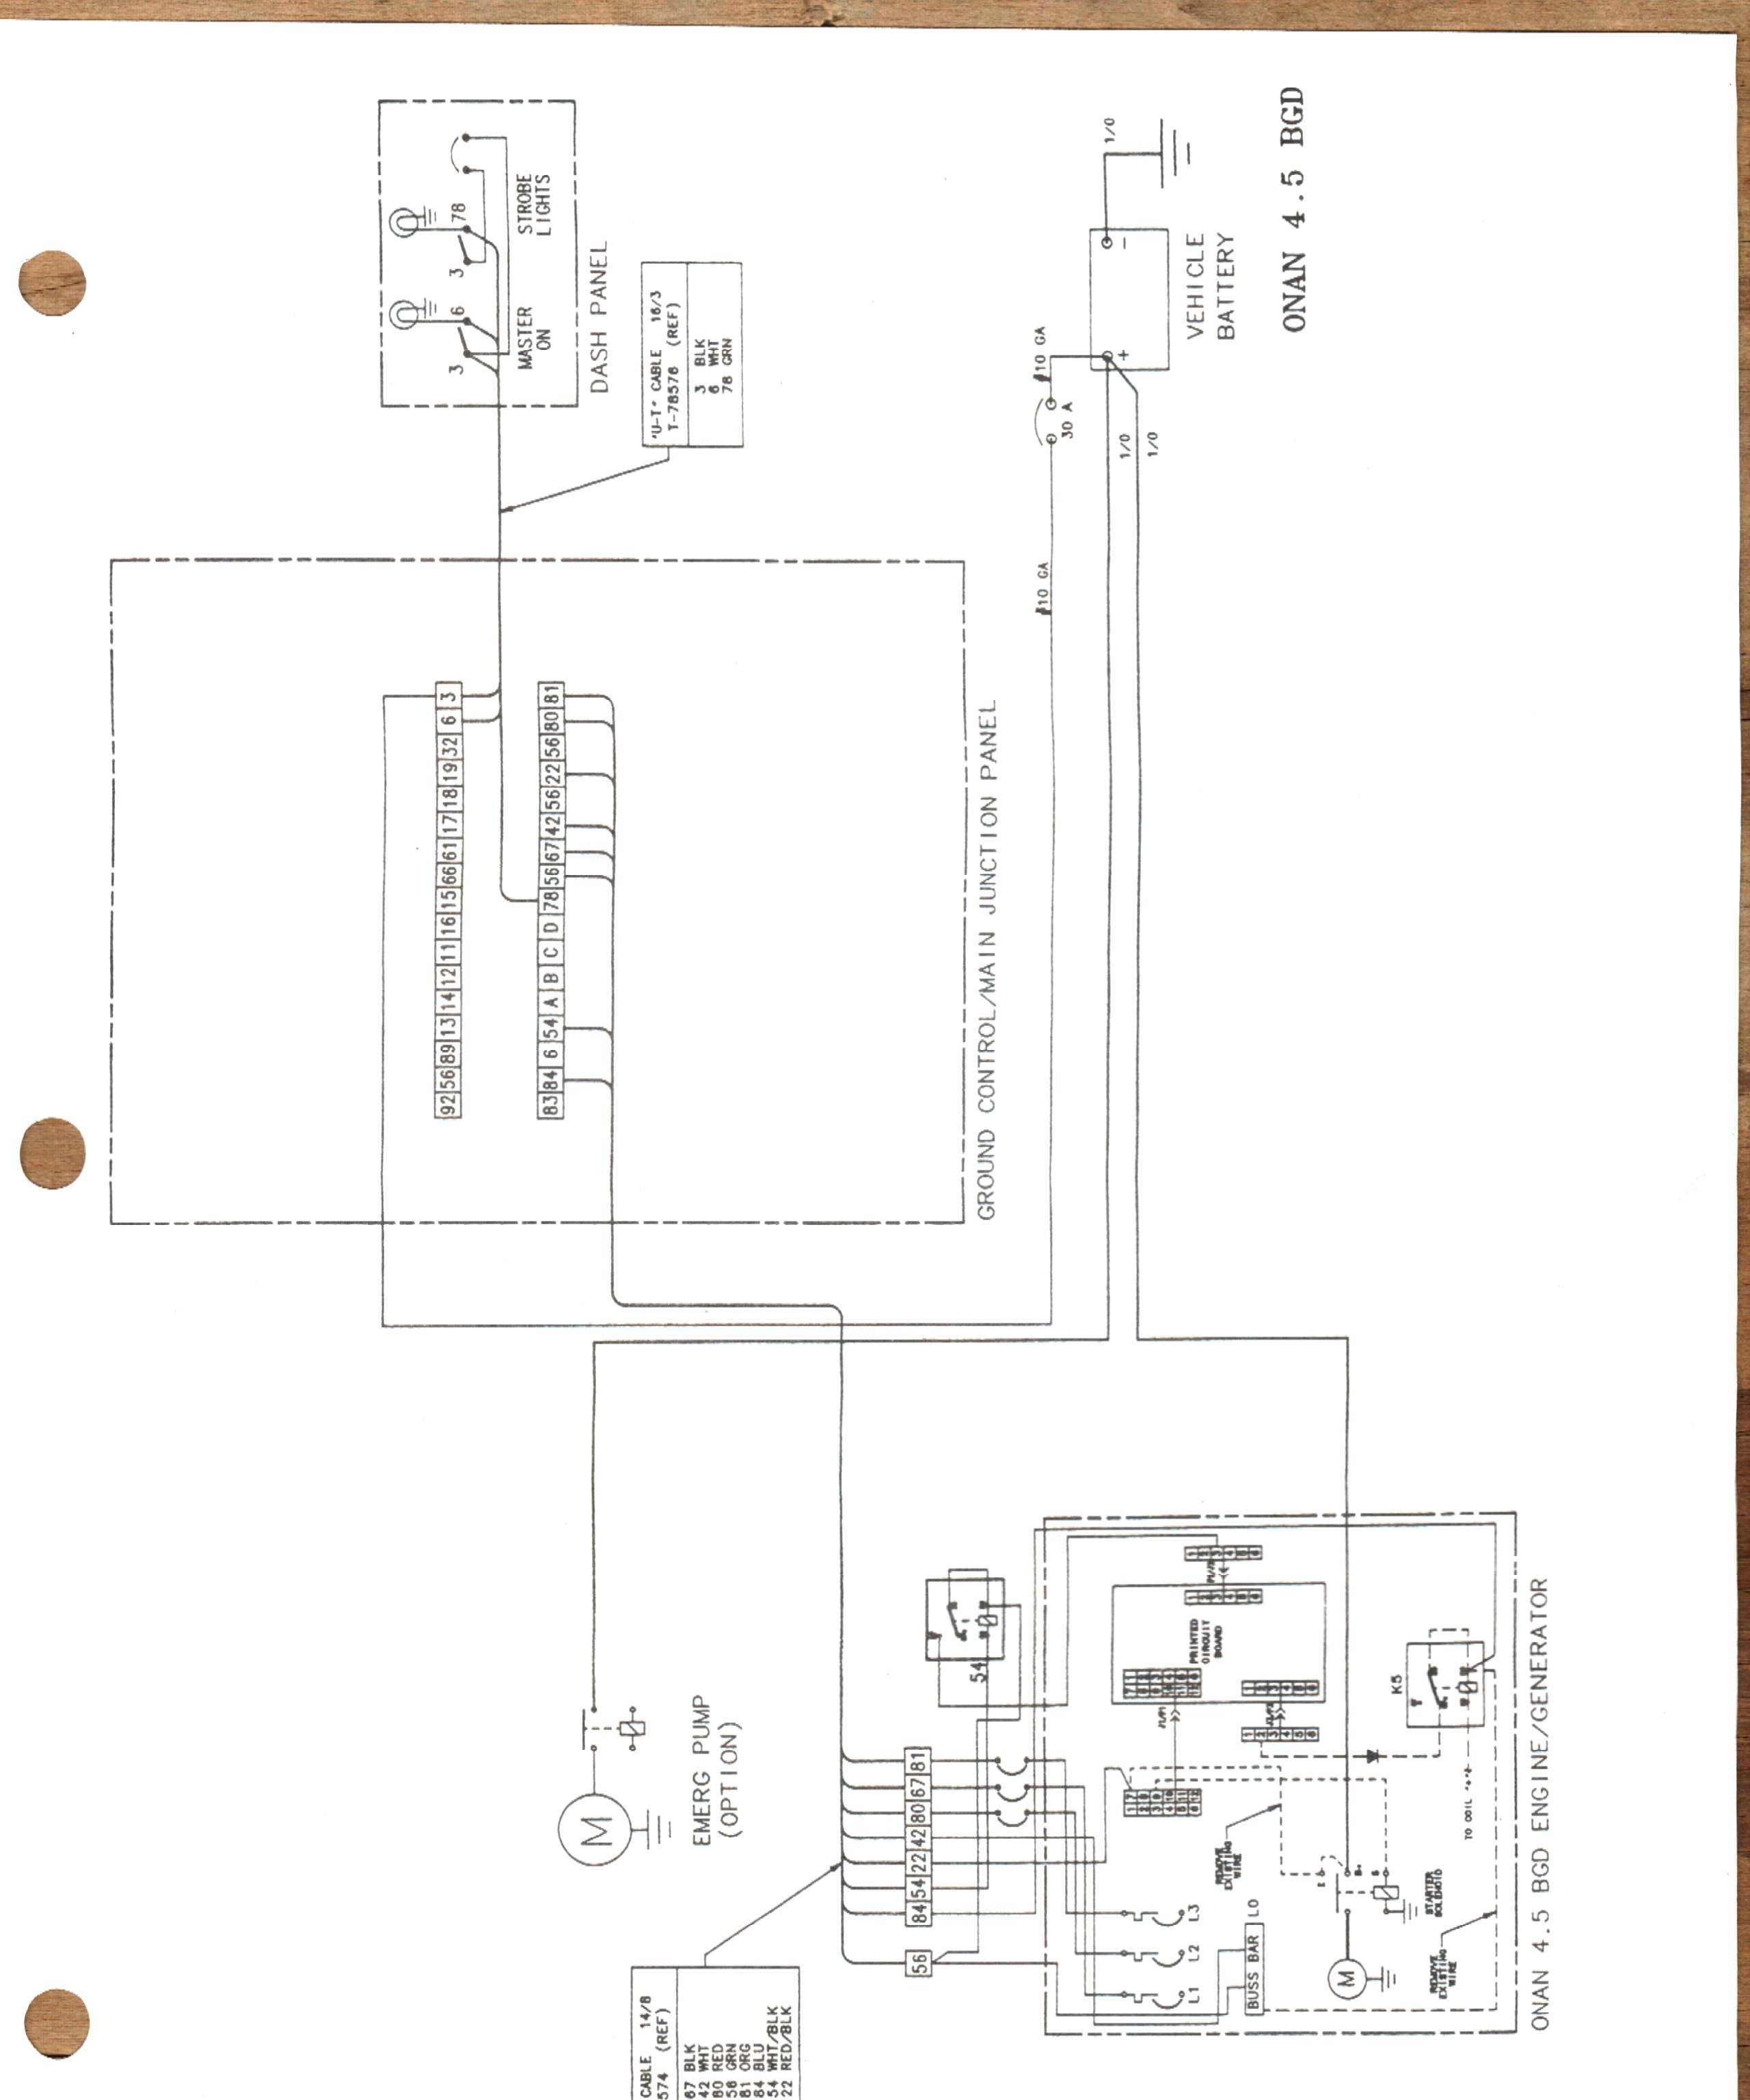 Telsta Bucket Truck Wiring Diagram T Bucket Wiring Schematic Data Schematics Wiring Diagram • Of Telsta Bucket Truck Wiring Diagram Led Tail Light Wiring Diagram 3 Wire Led Tail Light Wiring Diagram